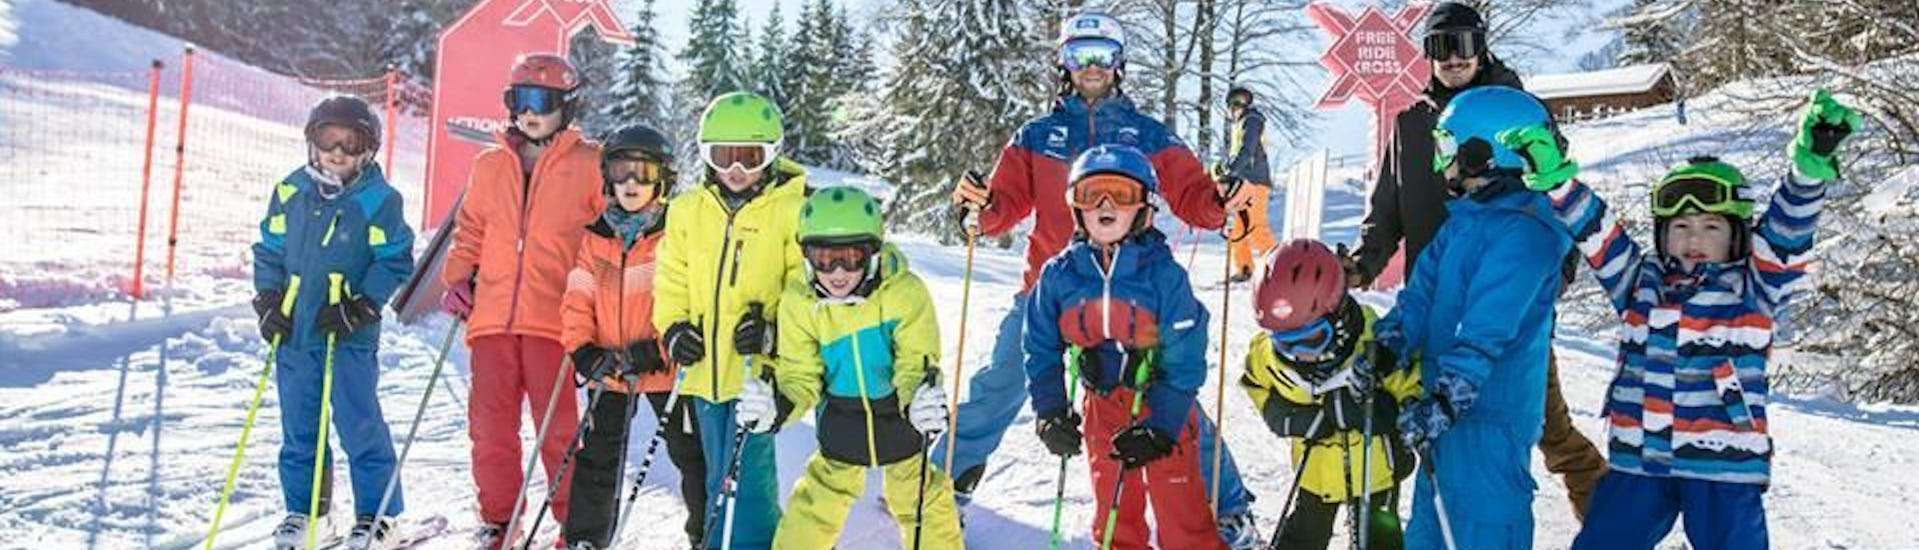 """Ski Lessons """"Weekend"""" for Kids (7-17 years) - All Levels"""